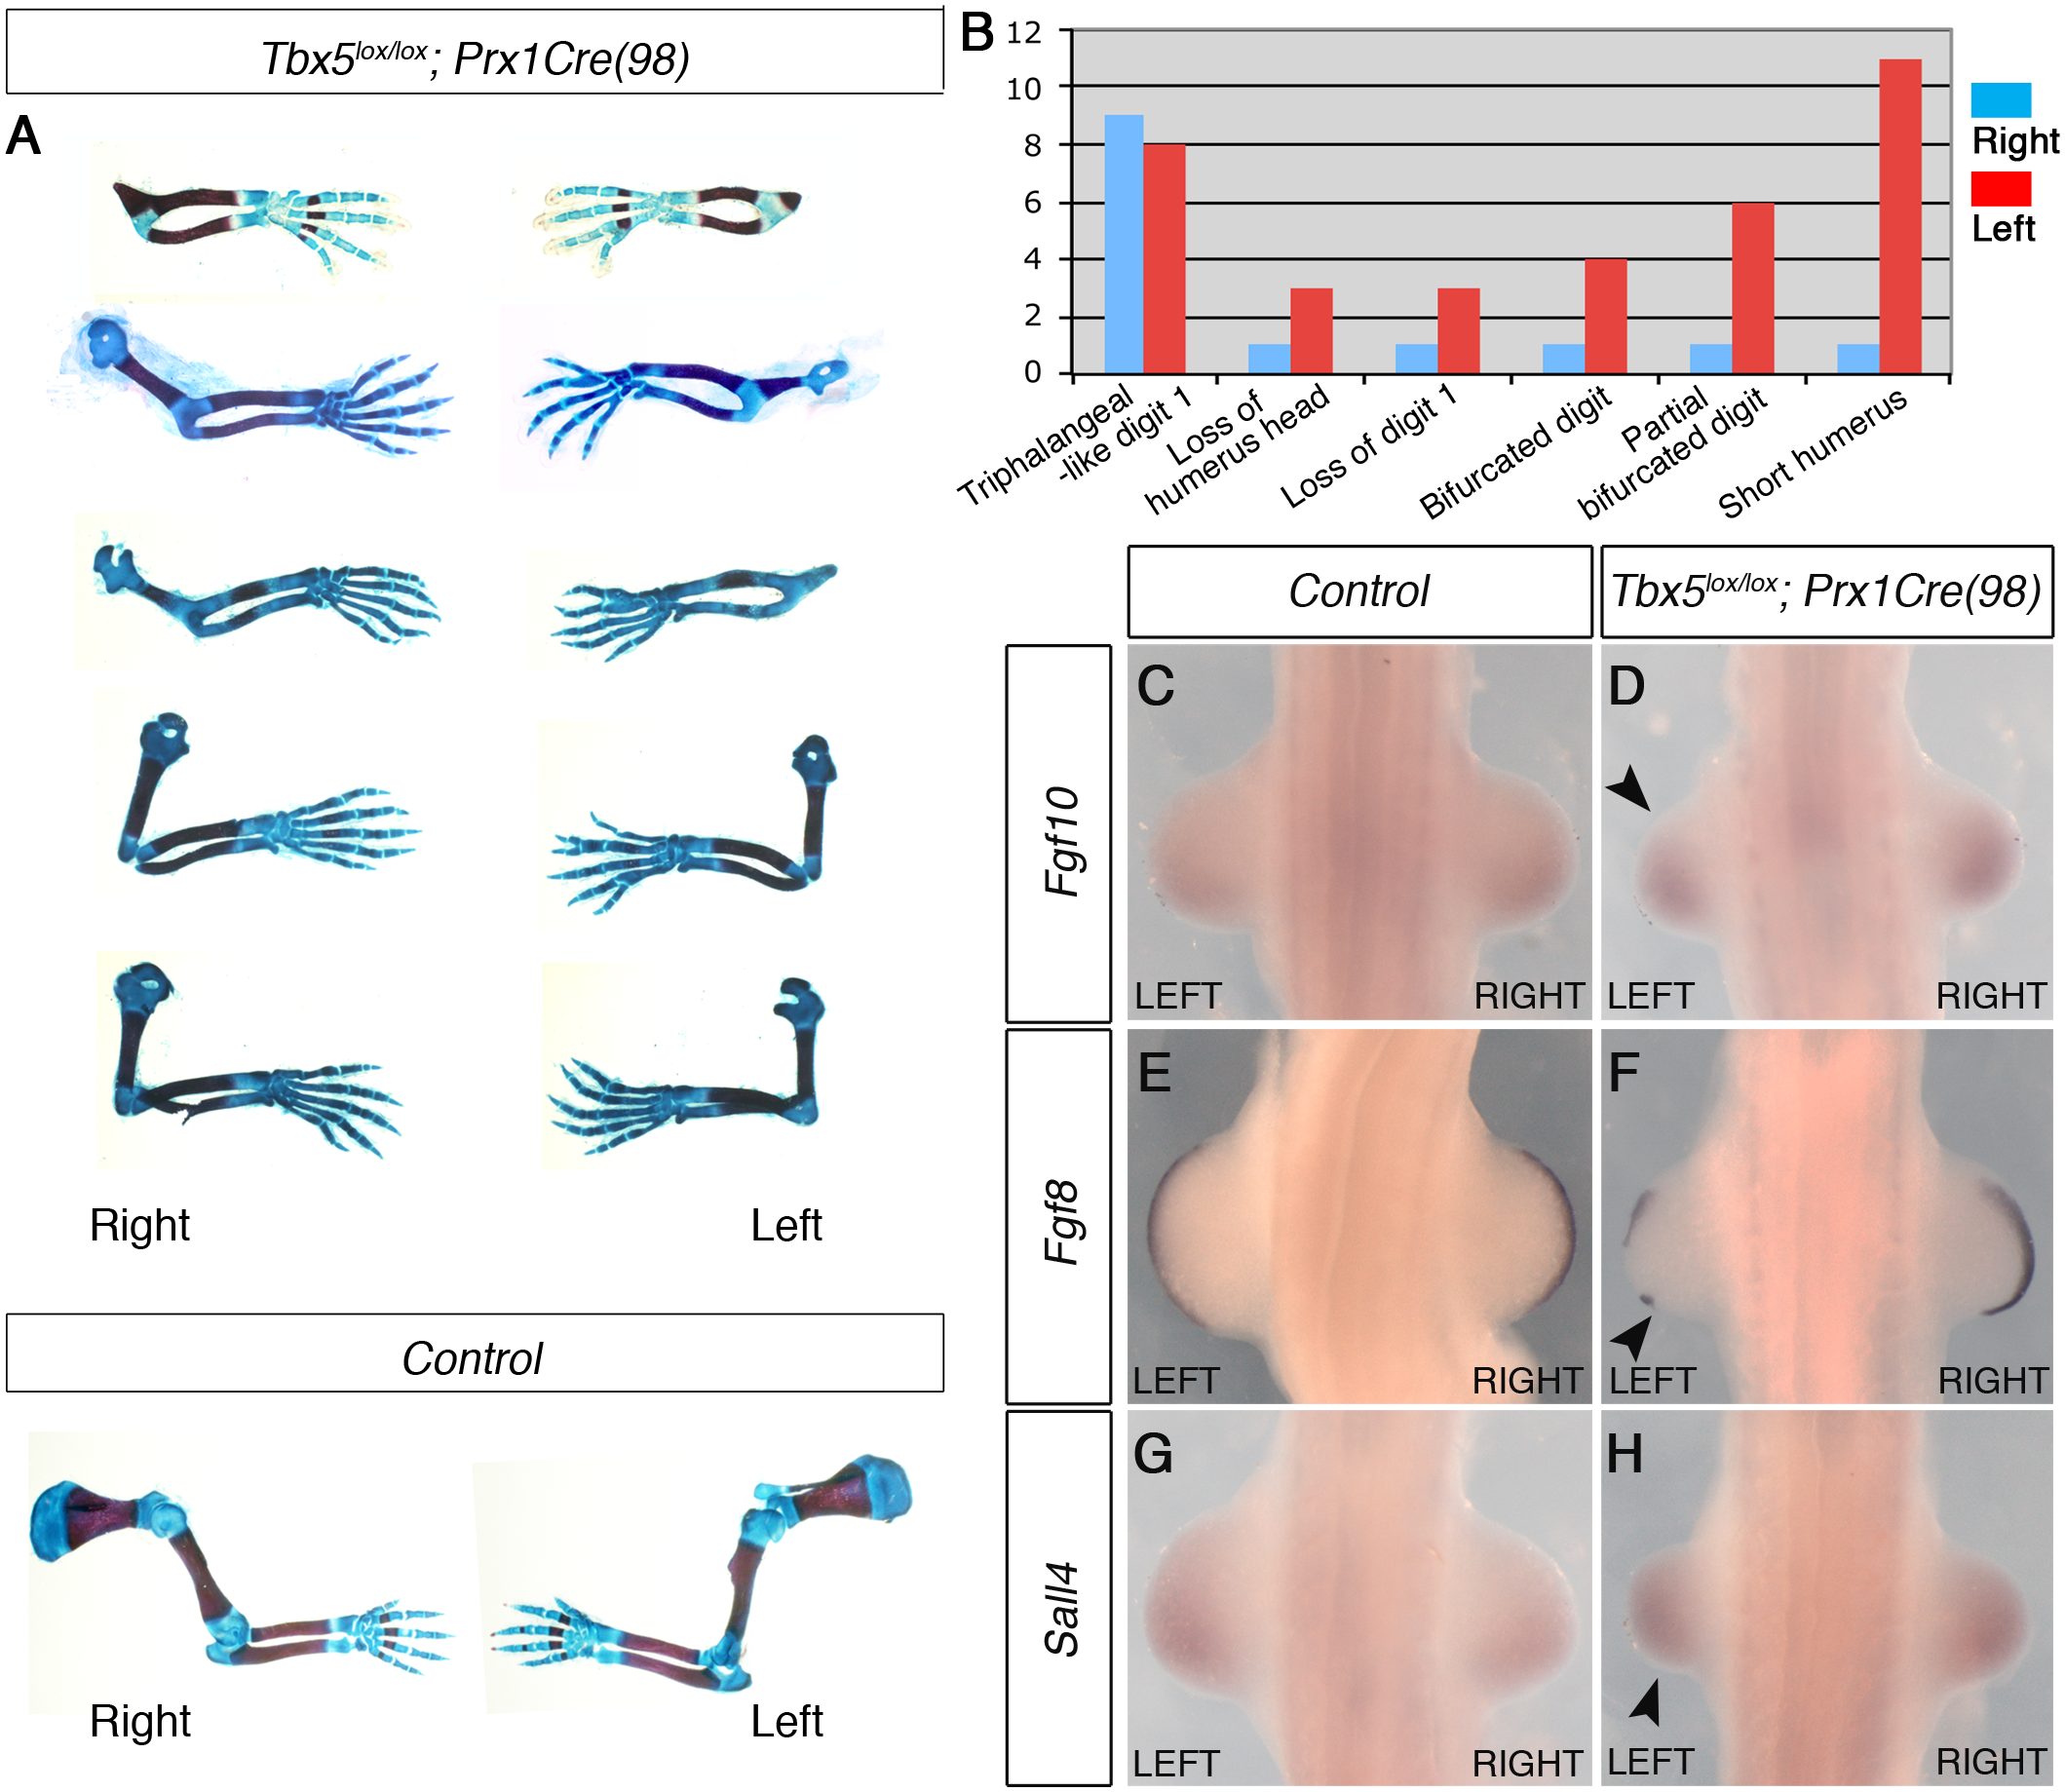 The mosaic and delayed deletion of <i>Tbx5</i> results in the formation of left-biased forelimb defects.